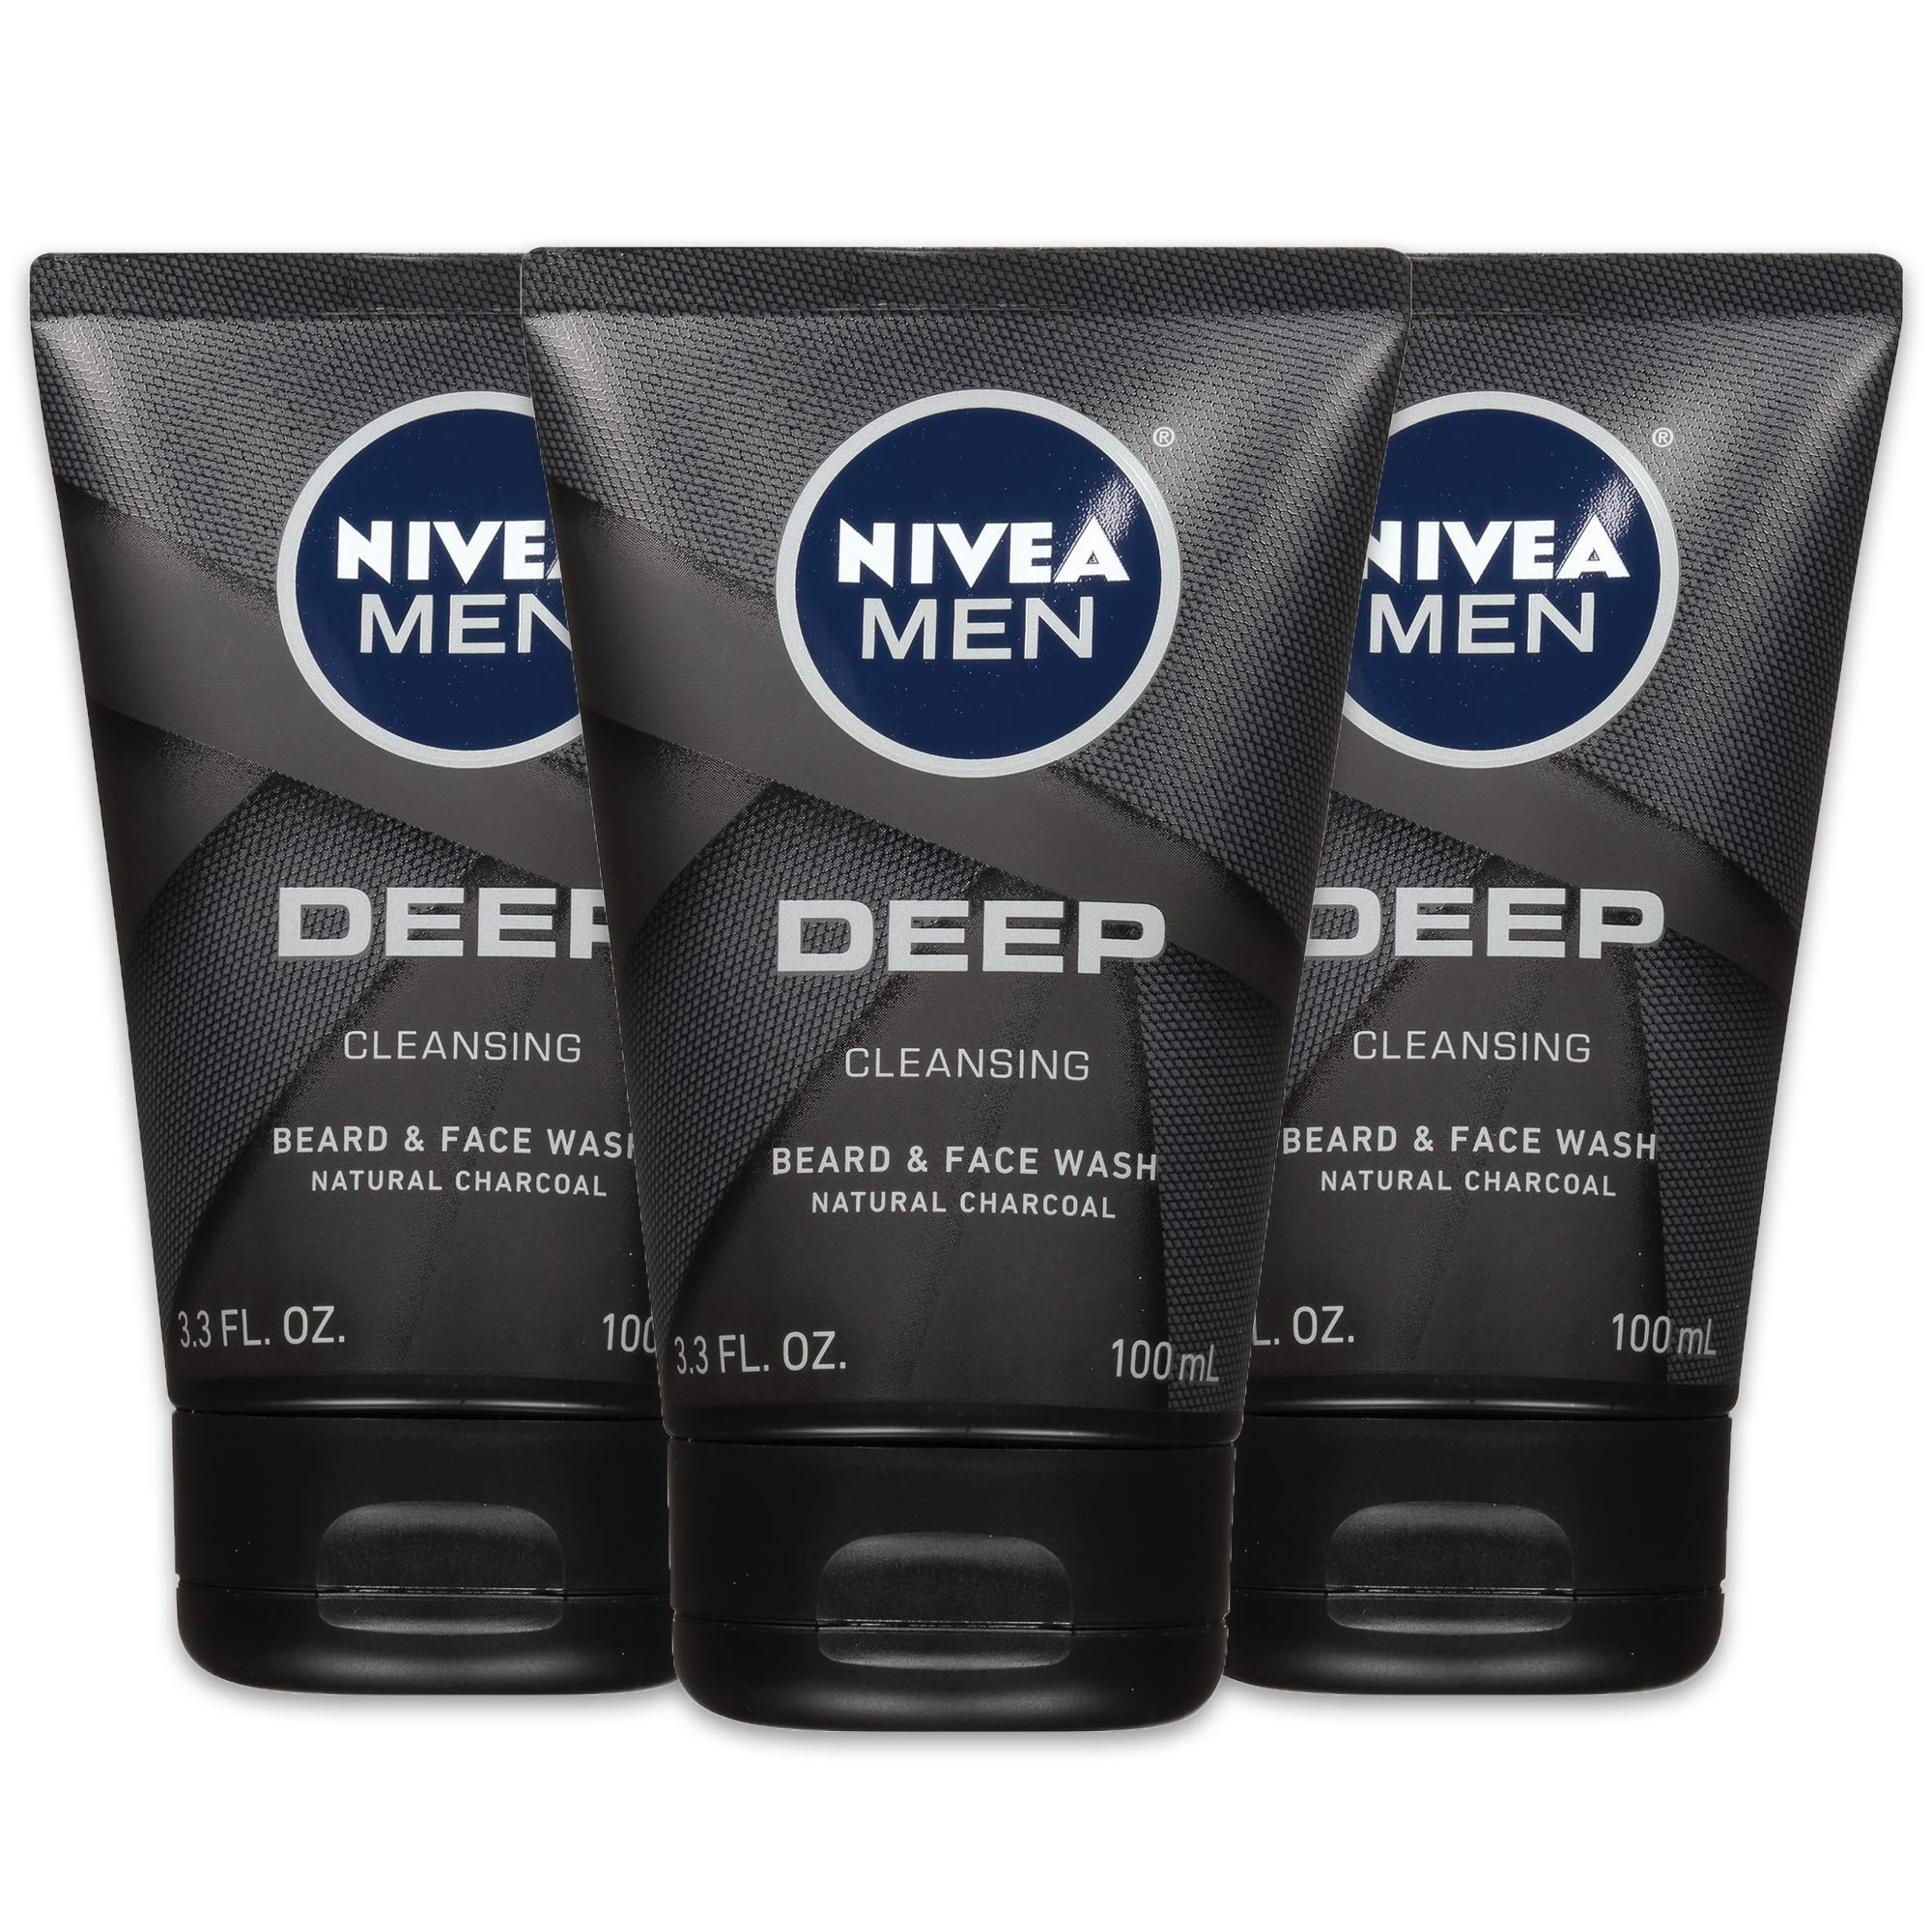 NIVEA Men DEEP Cleansing Beard & Face Wash - With Natural Charcoal to Deeply Clean - 3.3 fl. oz. Tube (Pack of 3) by Nivea Men